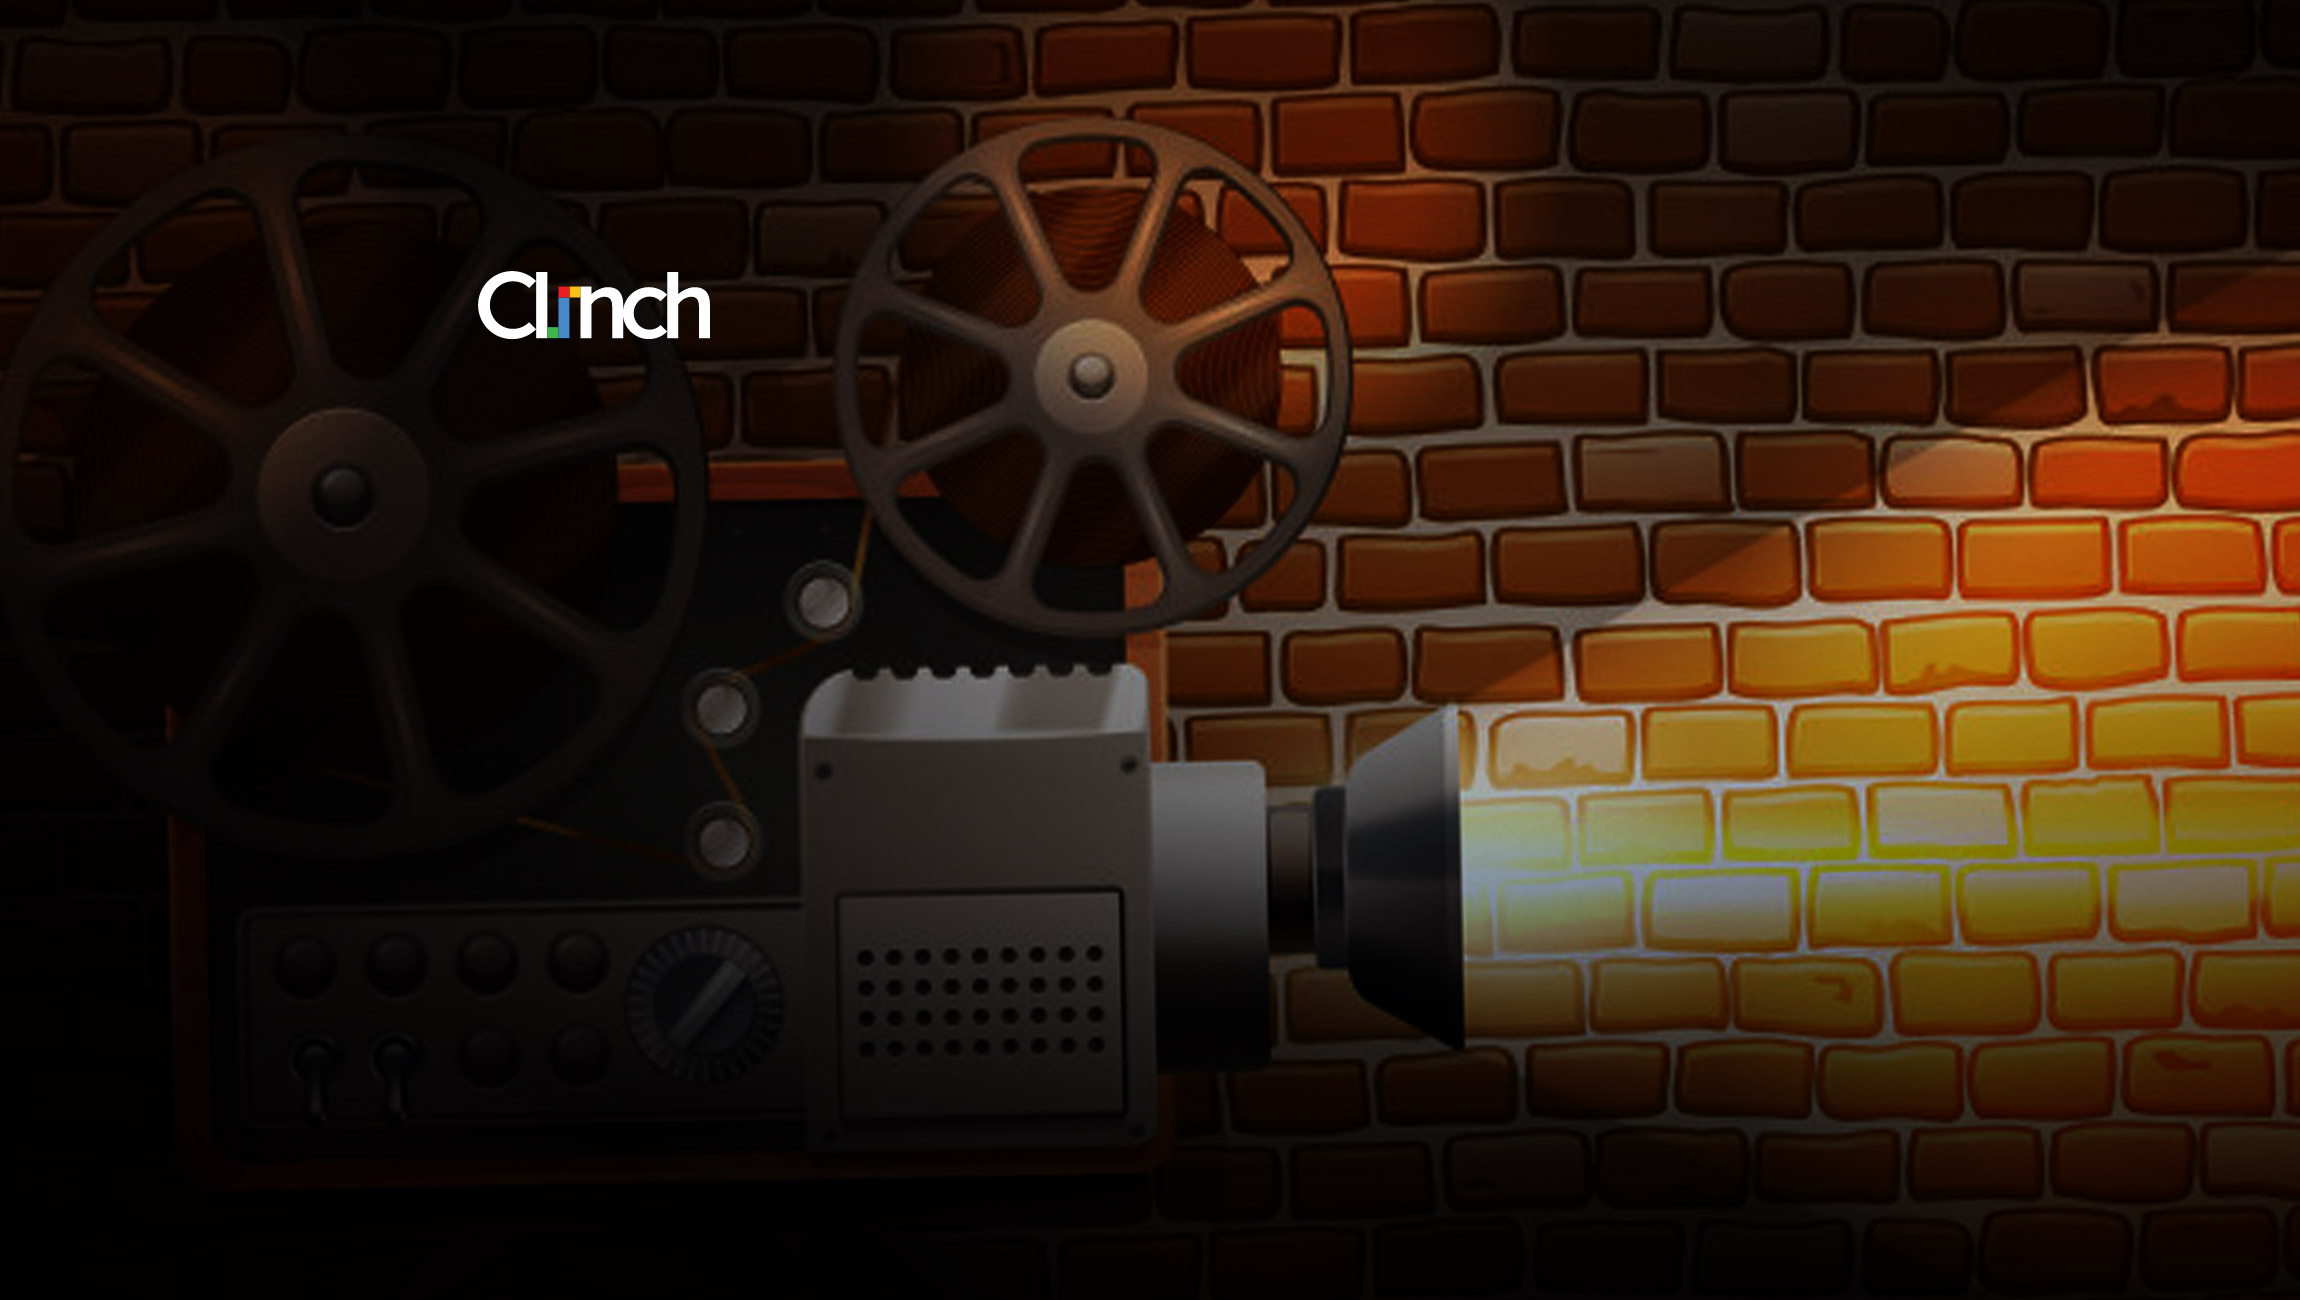 Clinch-Unveils-New-Shoppable-Video-Solutions_-Enabling-Real-Time-E-commerce-Video-Across-All-Channels_-From-Online-Video-to-OTT